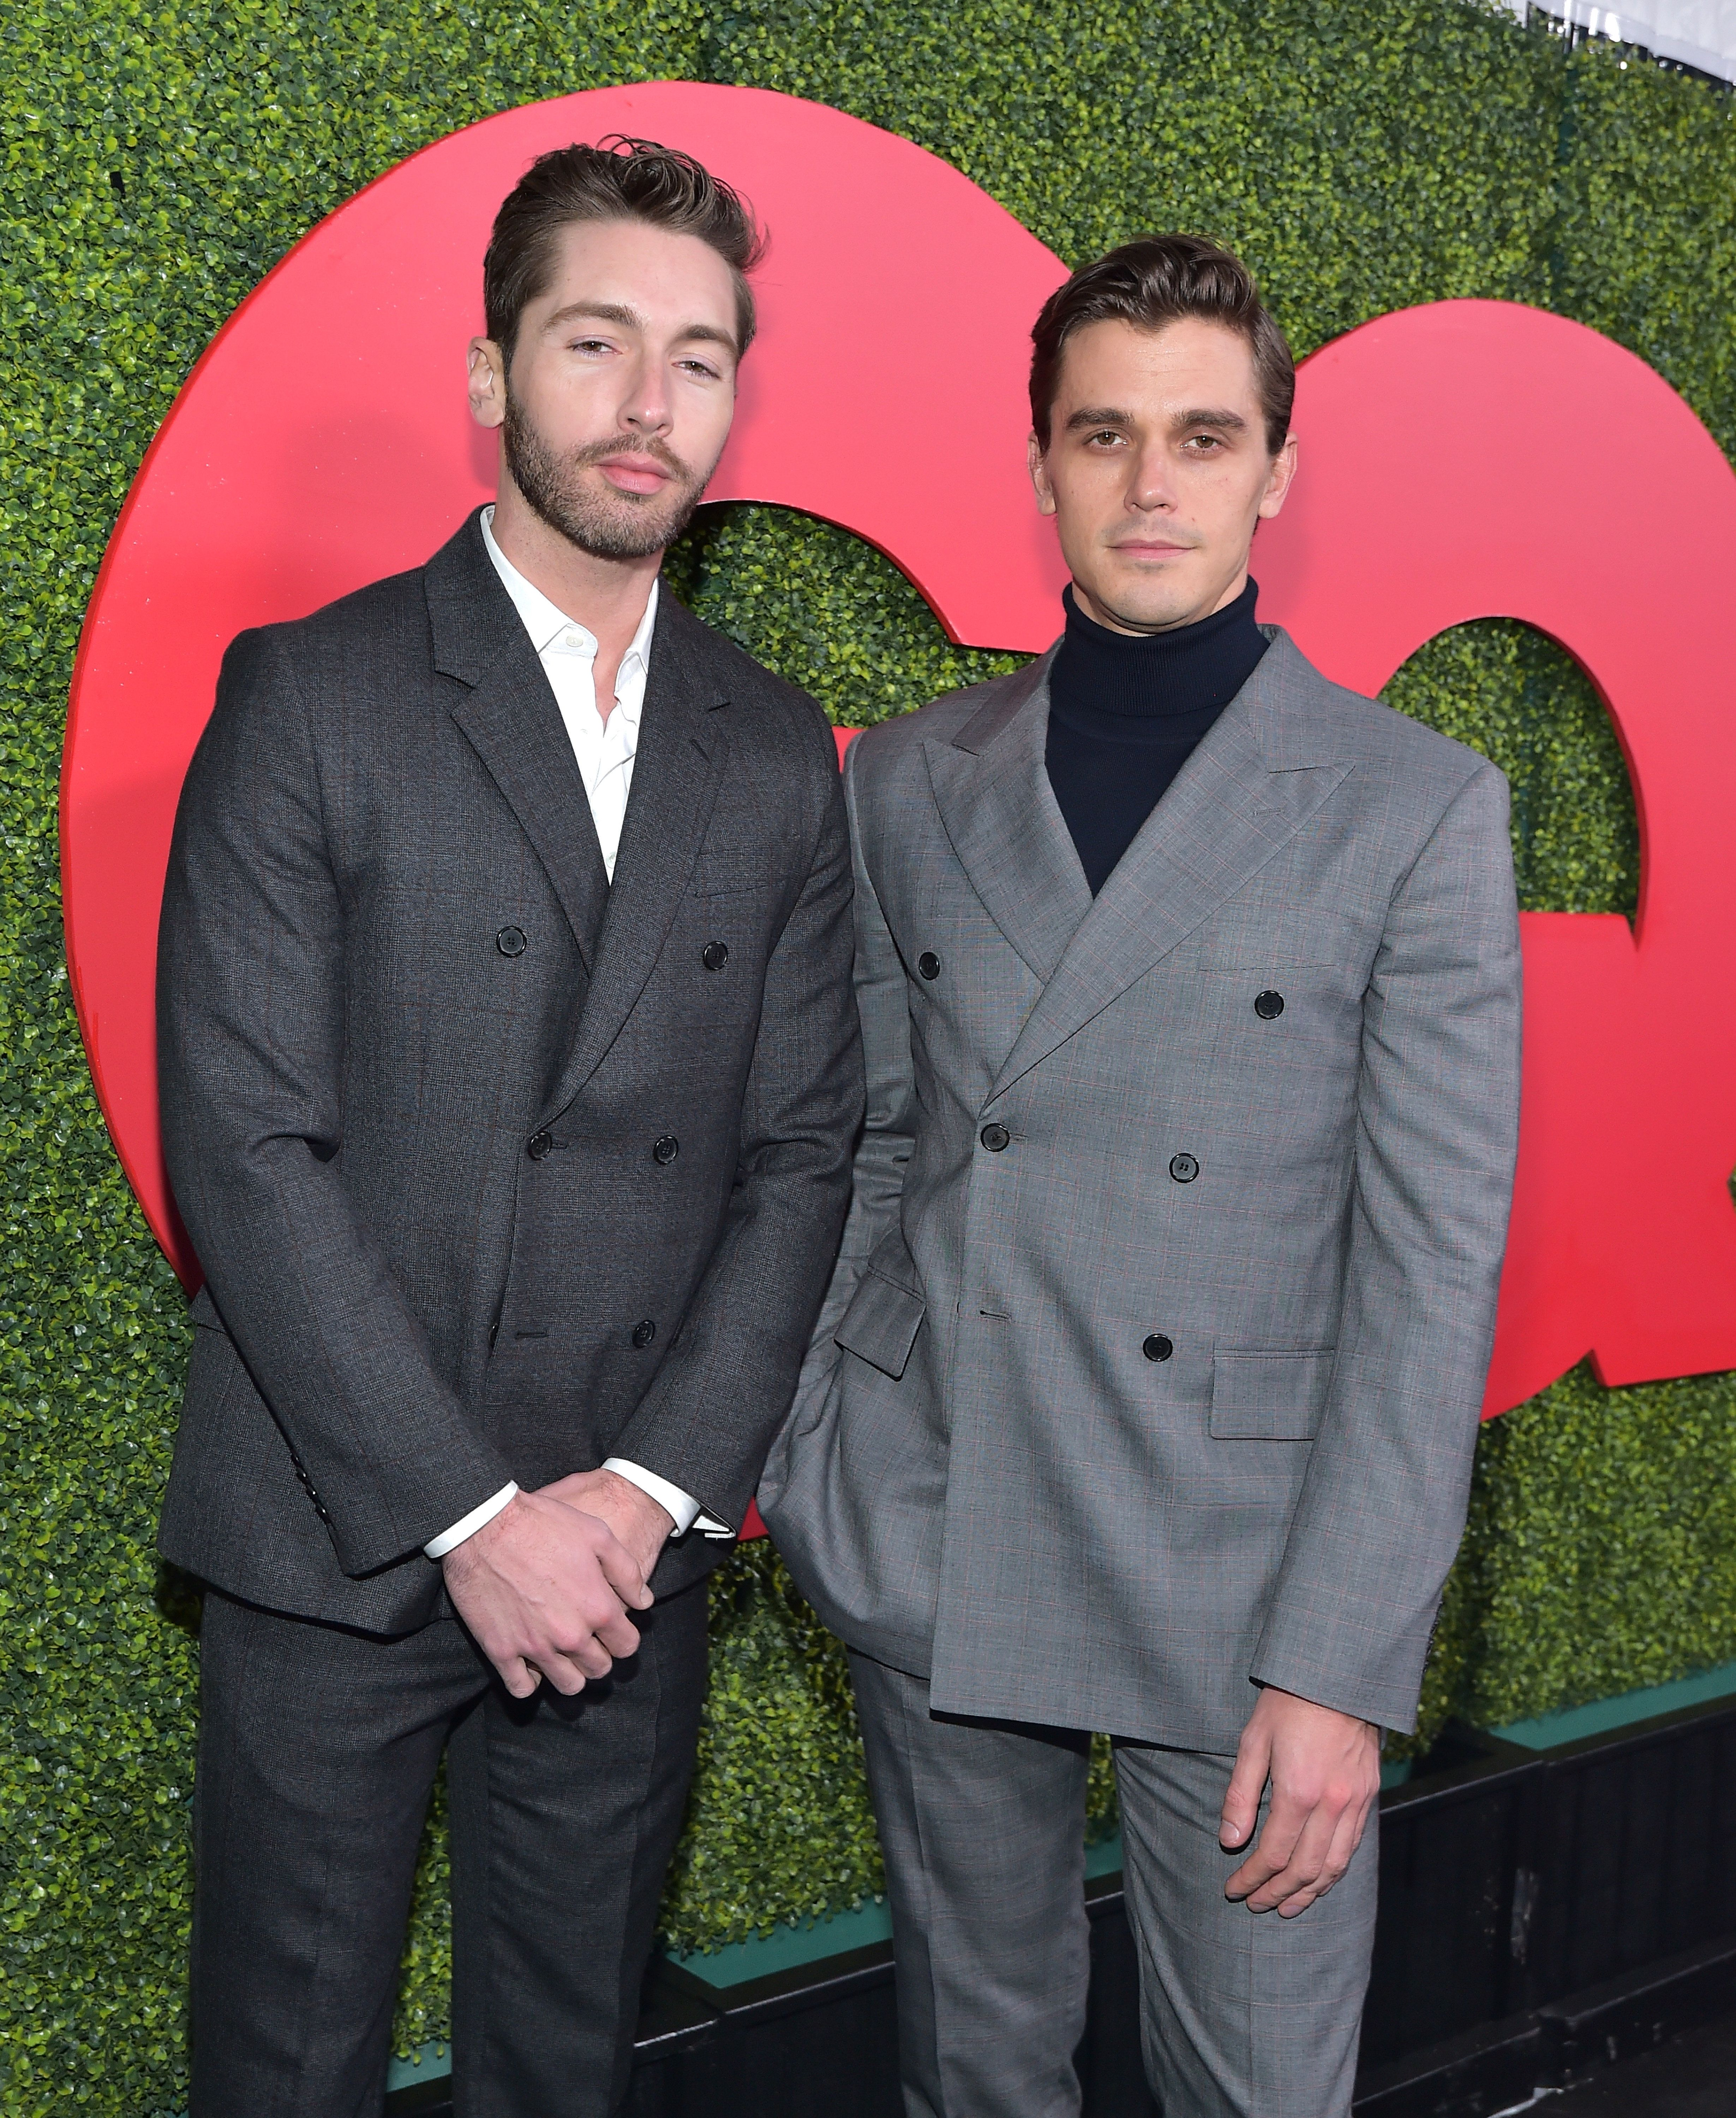 BEVERLY HILLS, CA - DECEMBER 06:  Joey Krietemeyer (L) and Antoni Porowski attends the 2018 GQ Men of the Year Party at a private residence on December 6, 2018 in Beverly Hills, California.  (Photo by Stefanie Keenan/Getty Images for GQ)